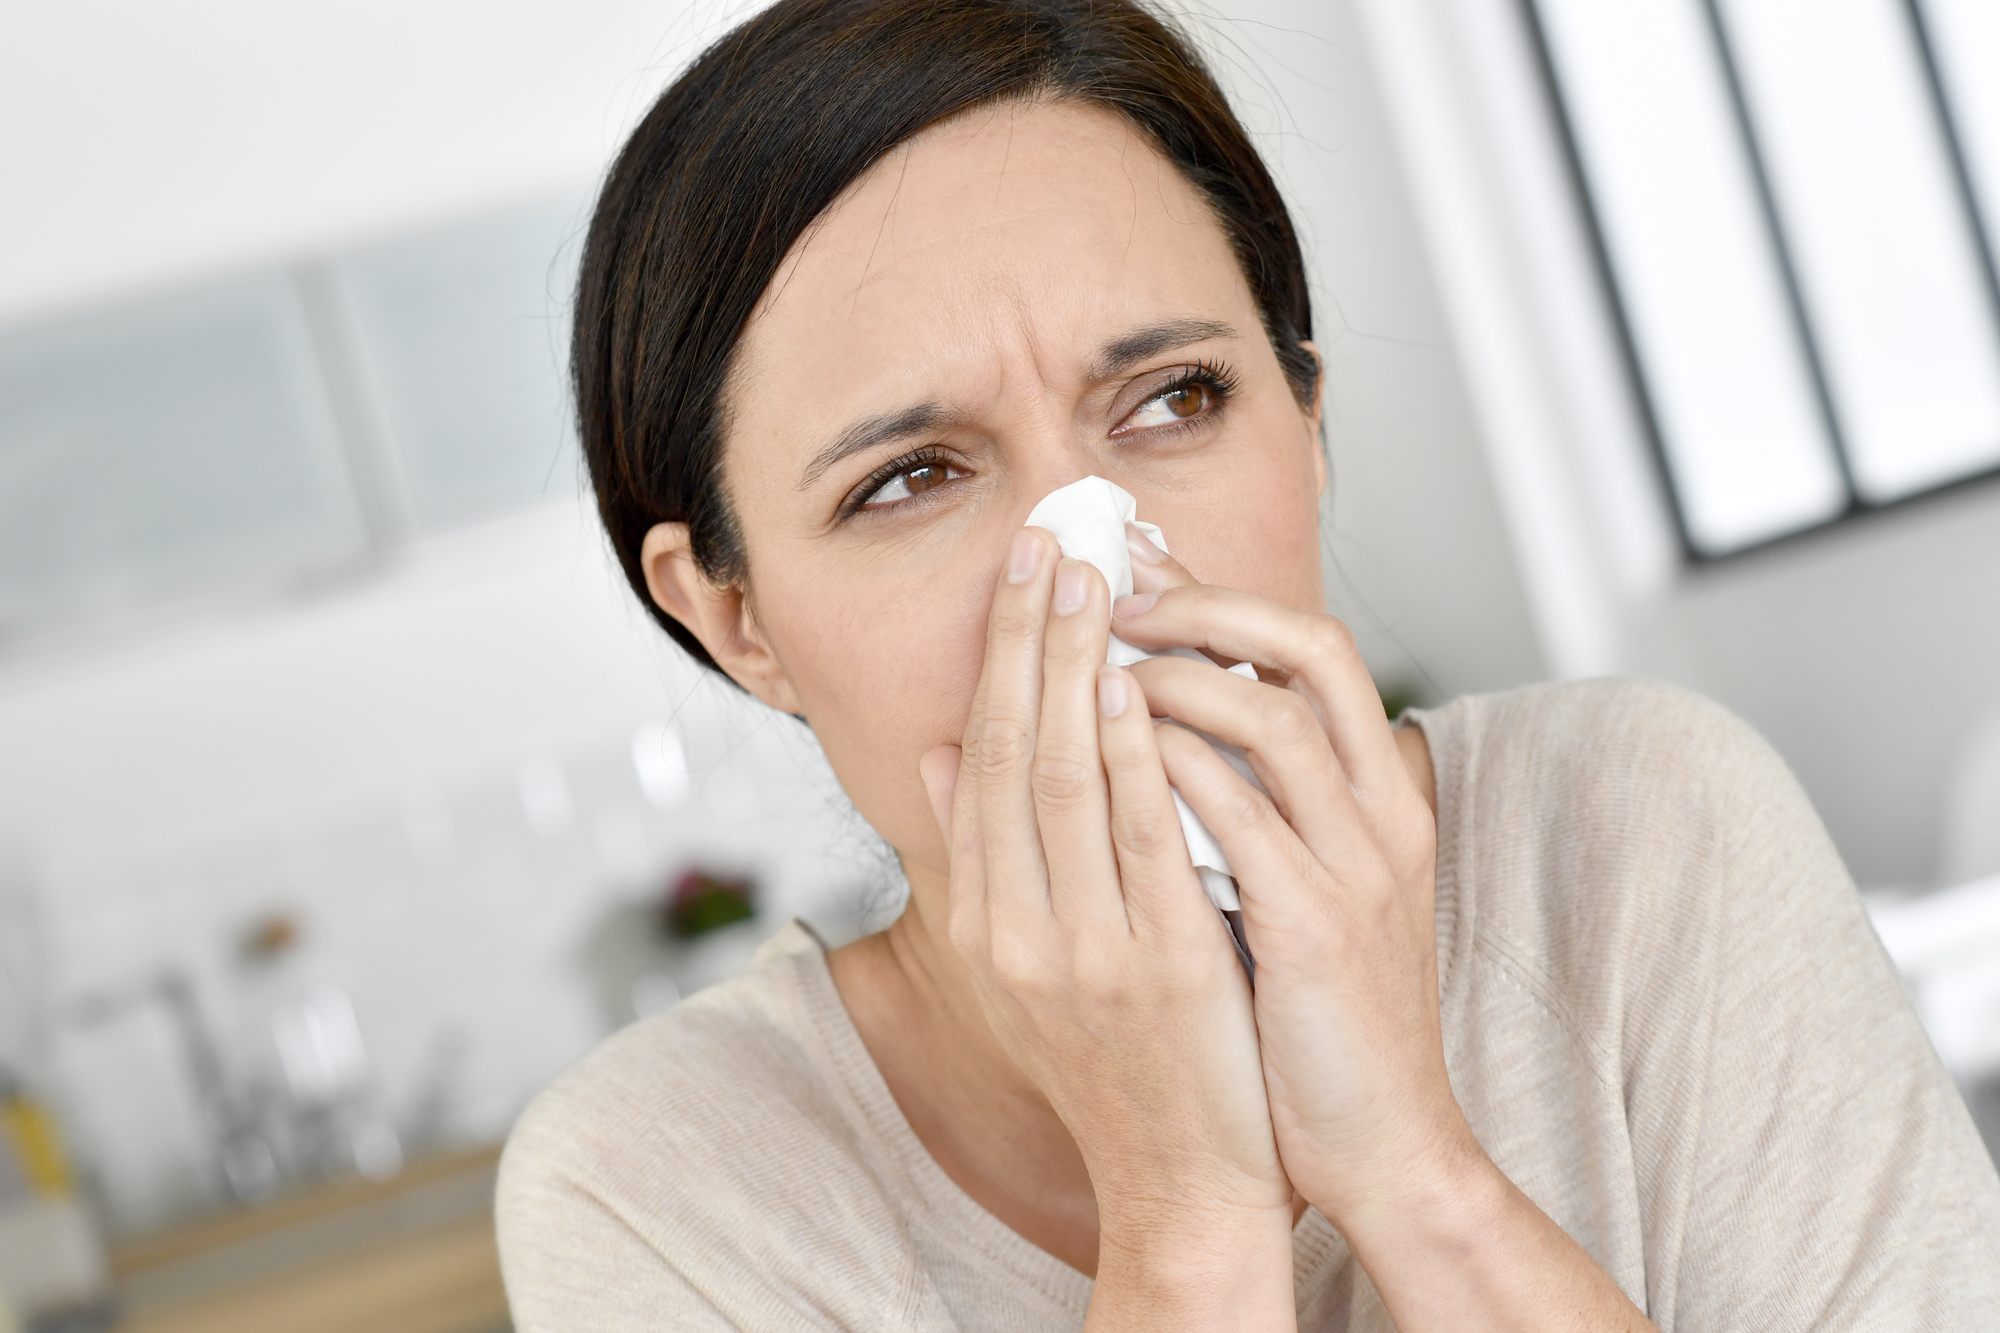 Protect Your Home From Allergens